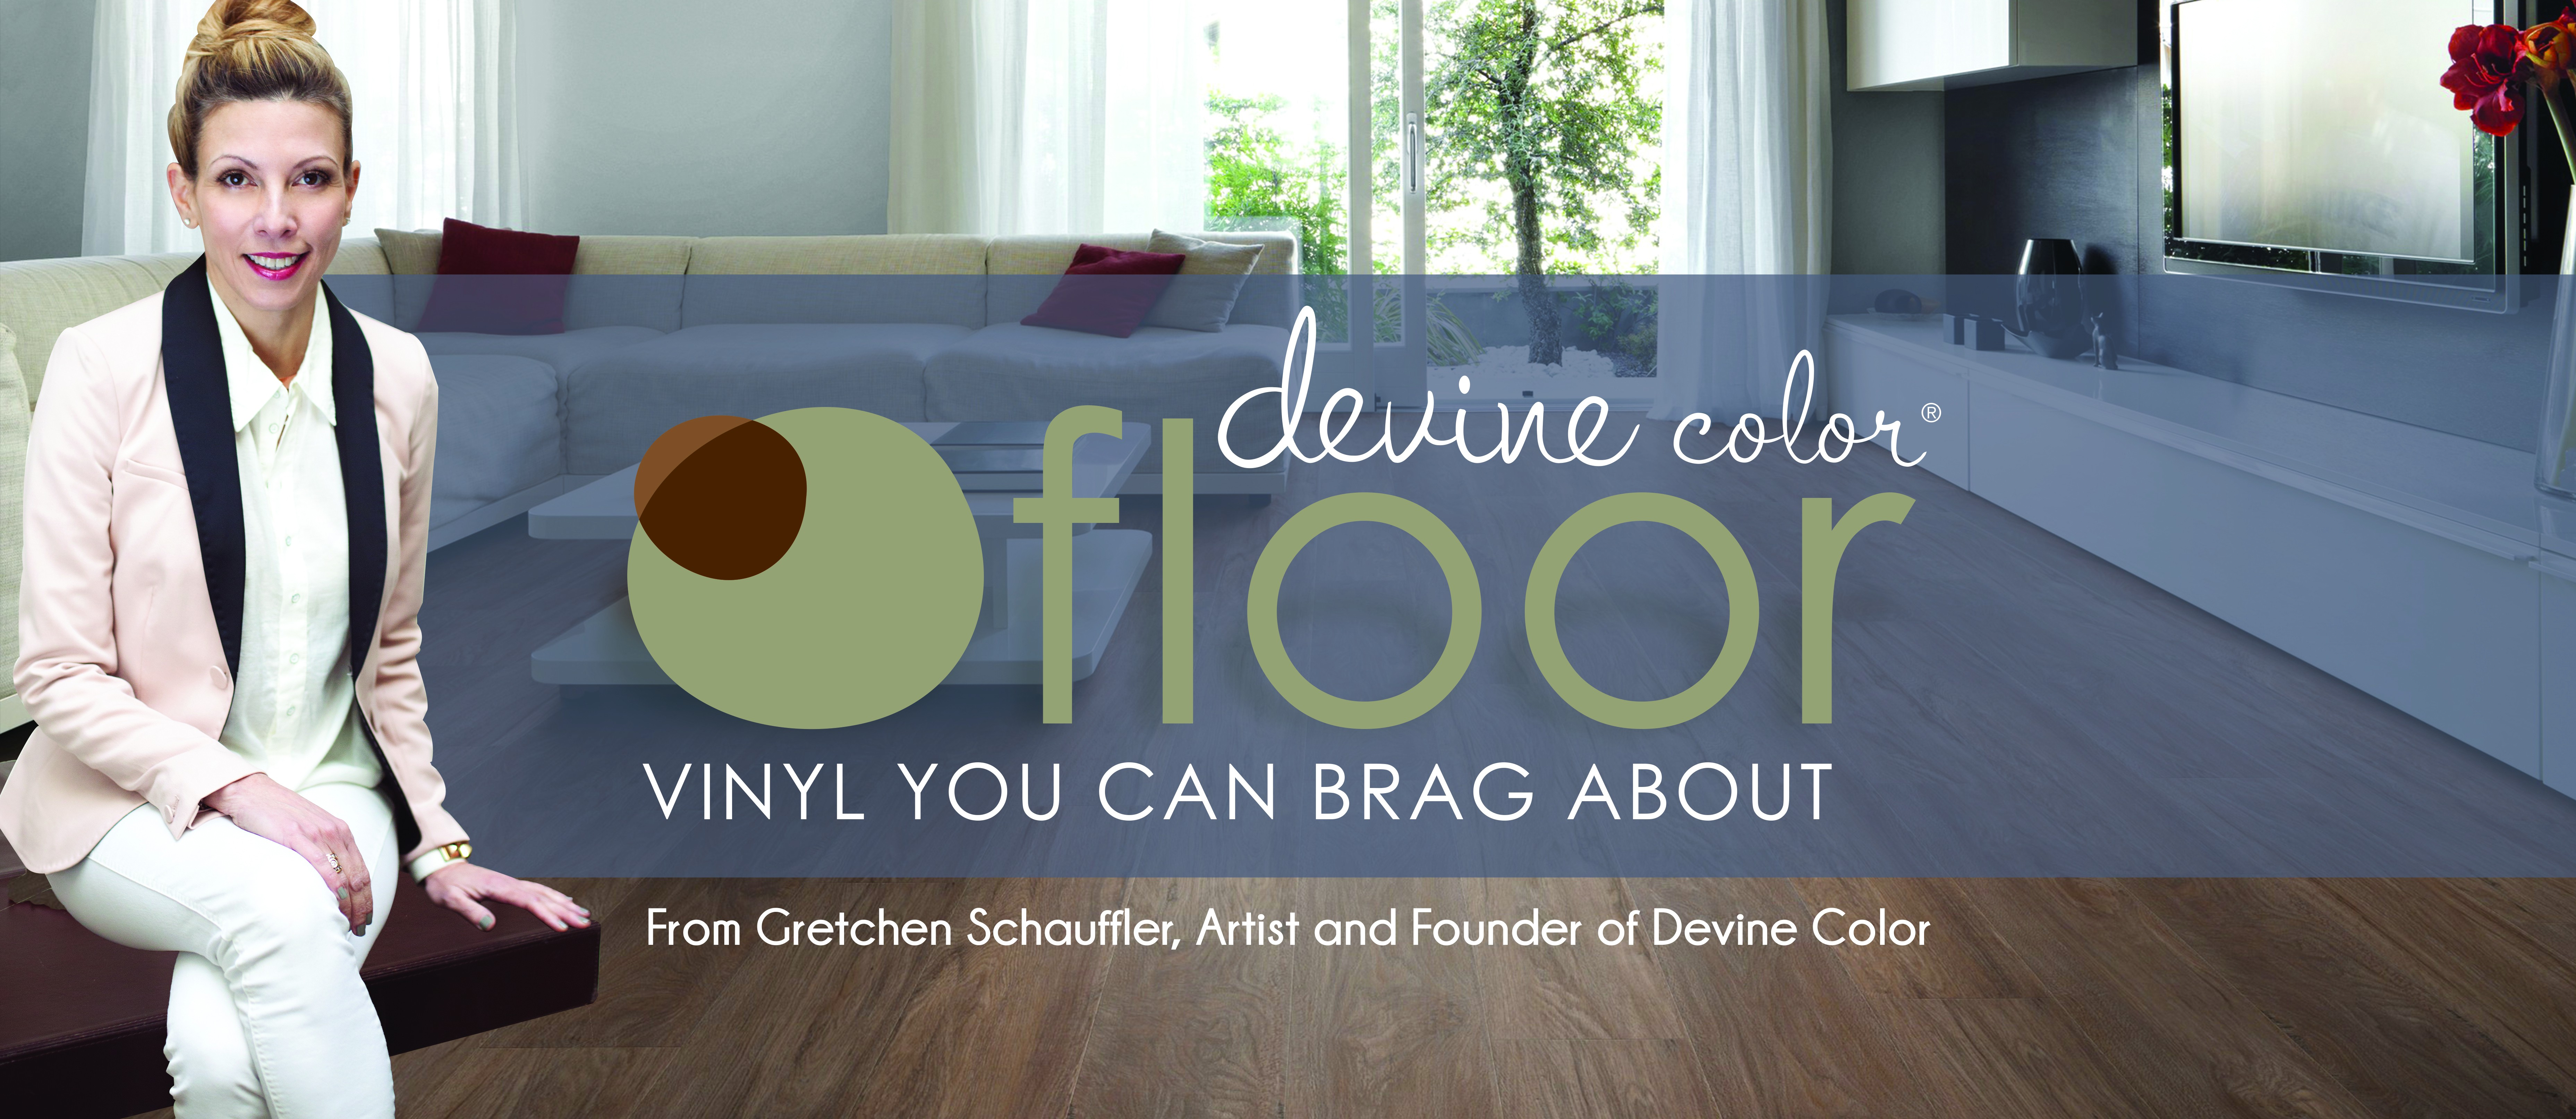 Create a unique, female-oriented display banner for Devine Color Floor